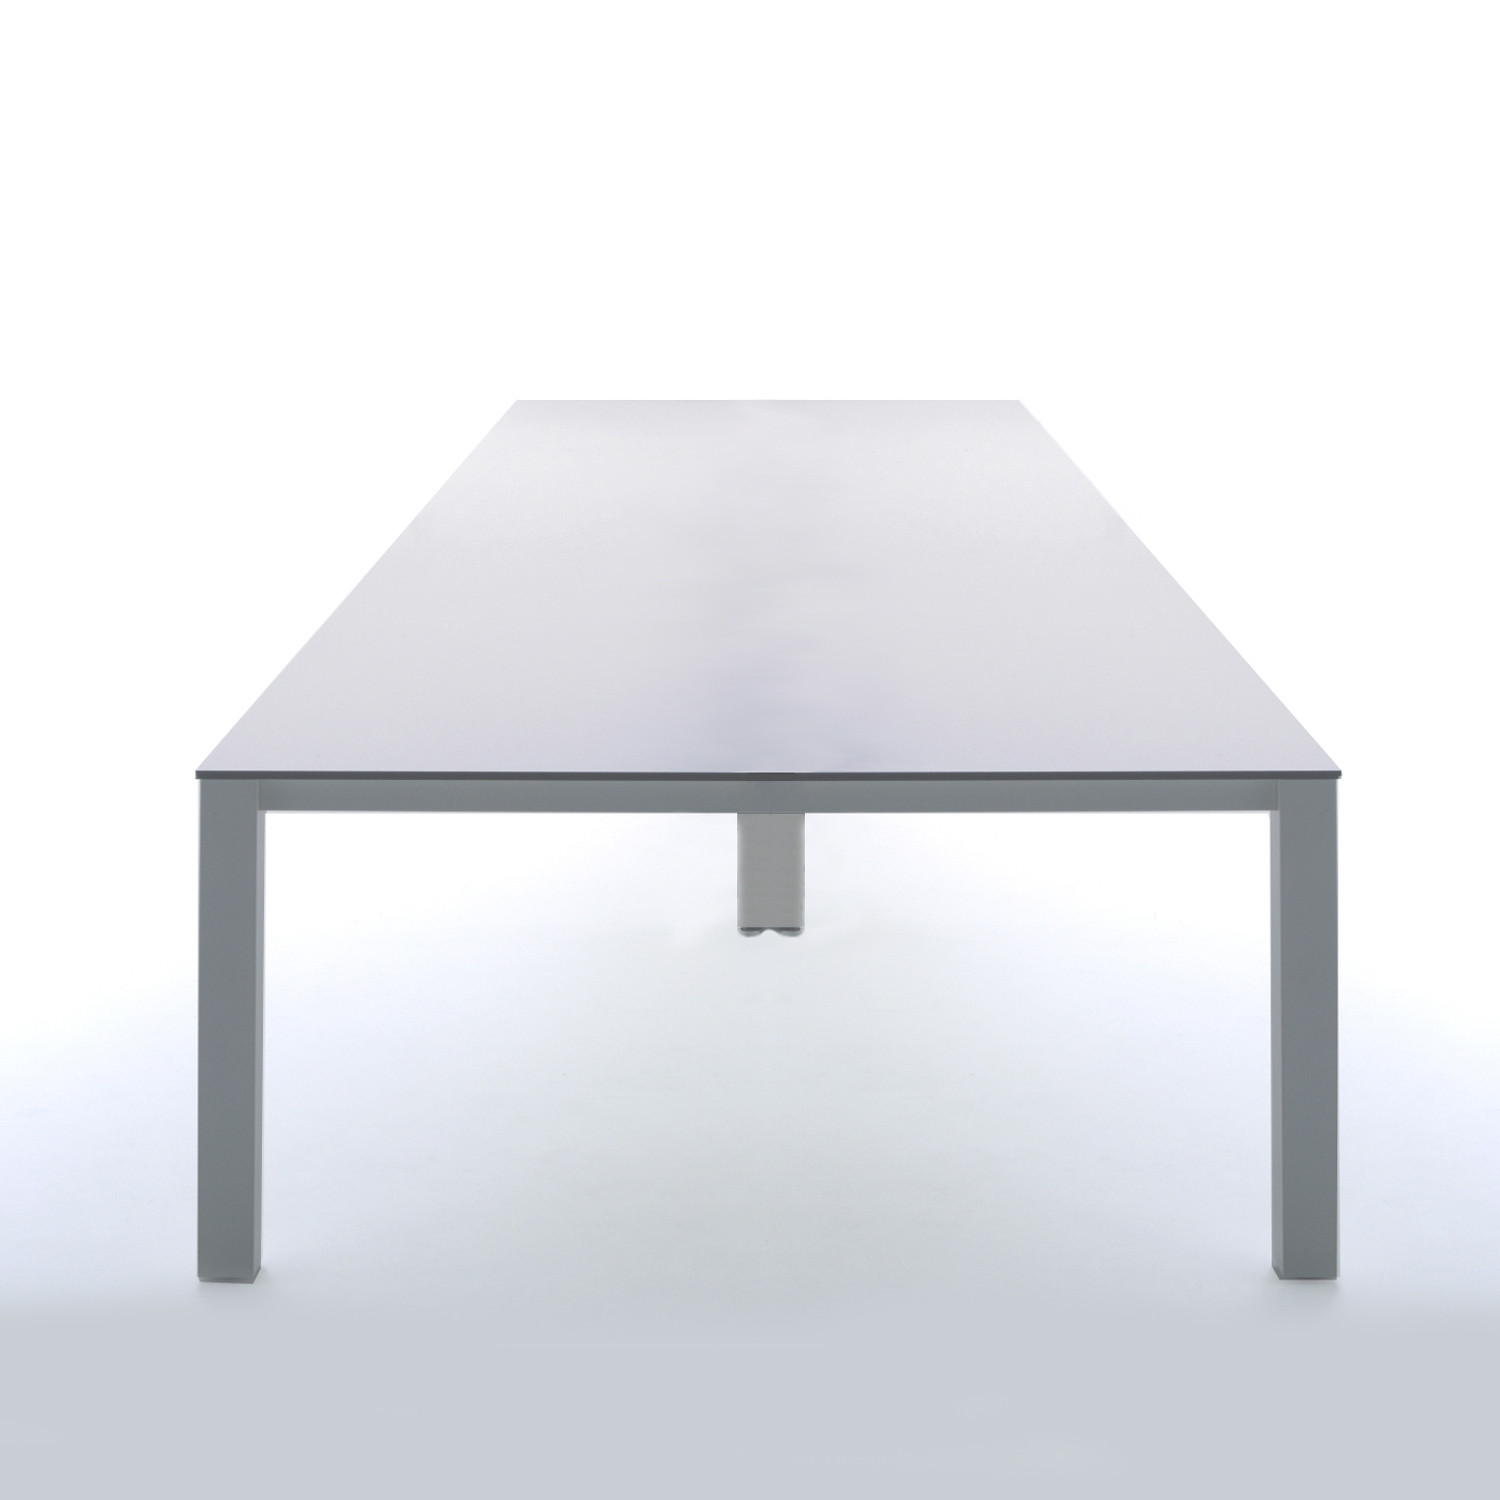 80:80 Office Bench